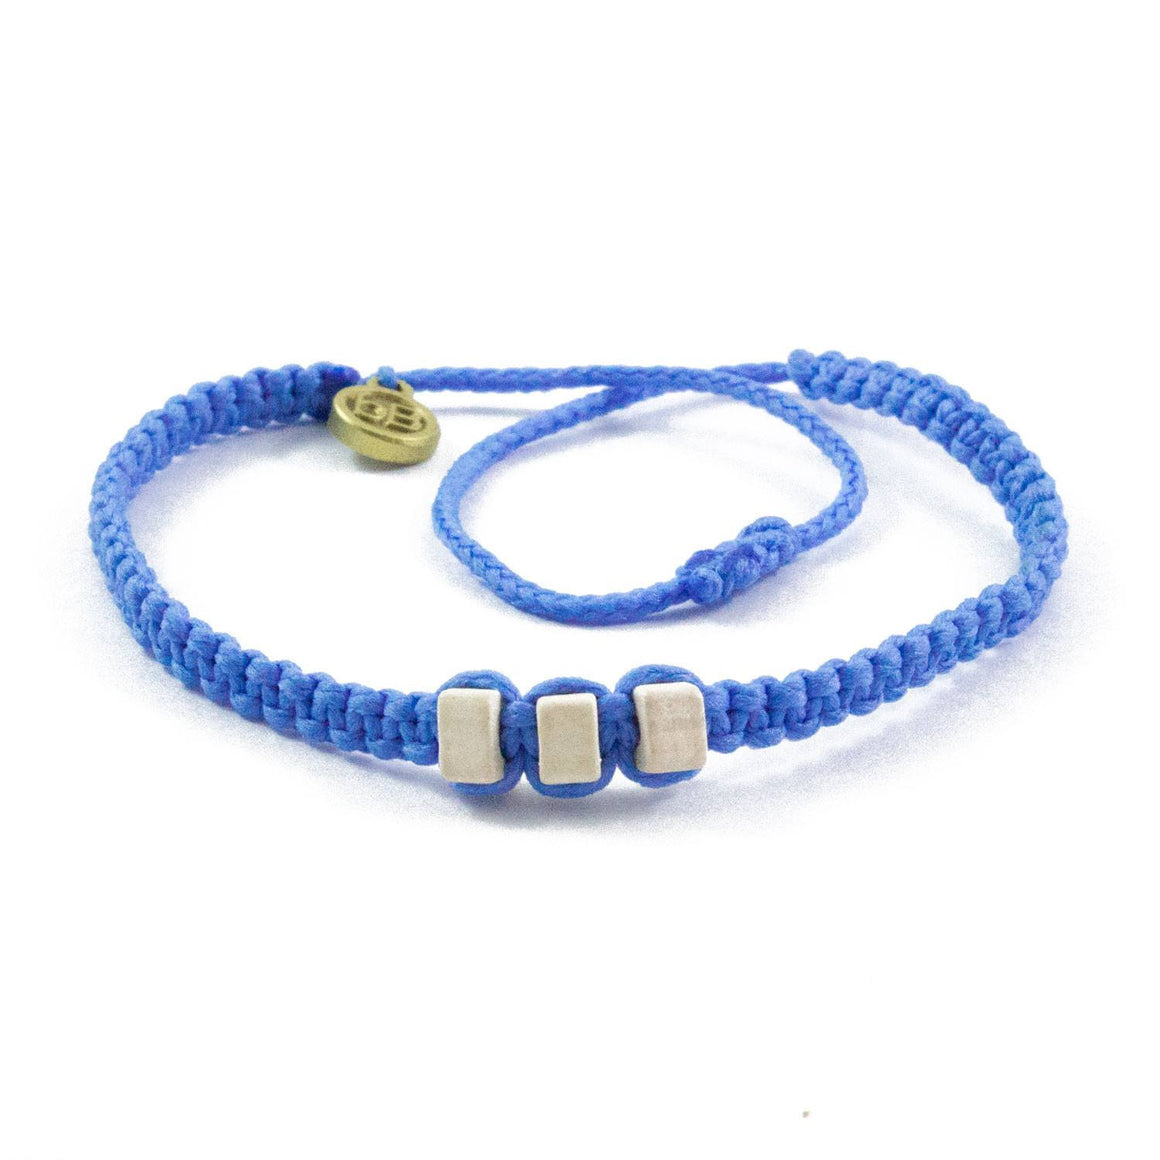 White Chasqui Sky Blue bracelets that help children cover